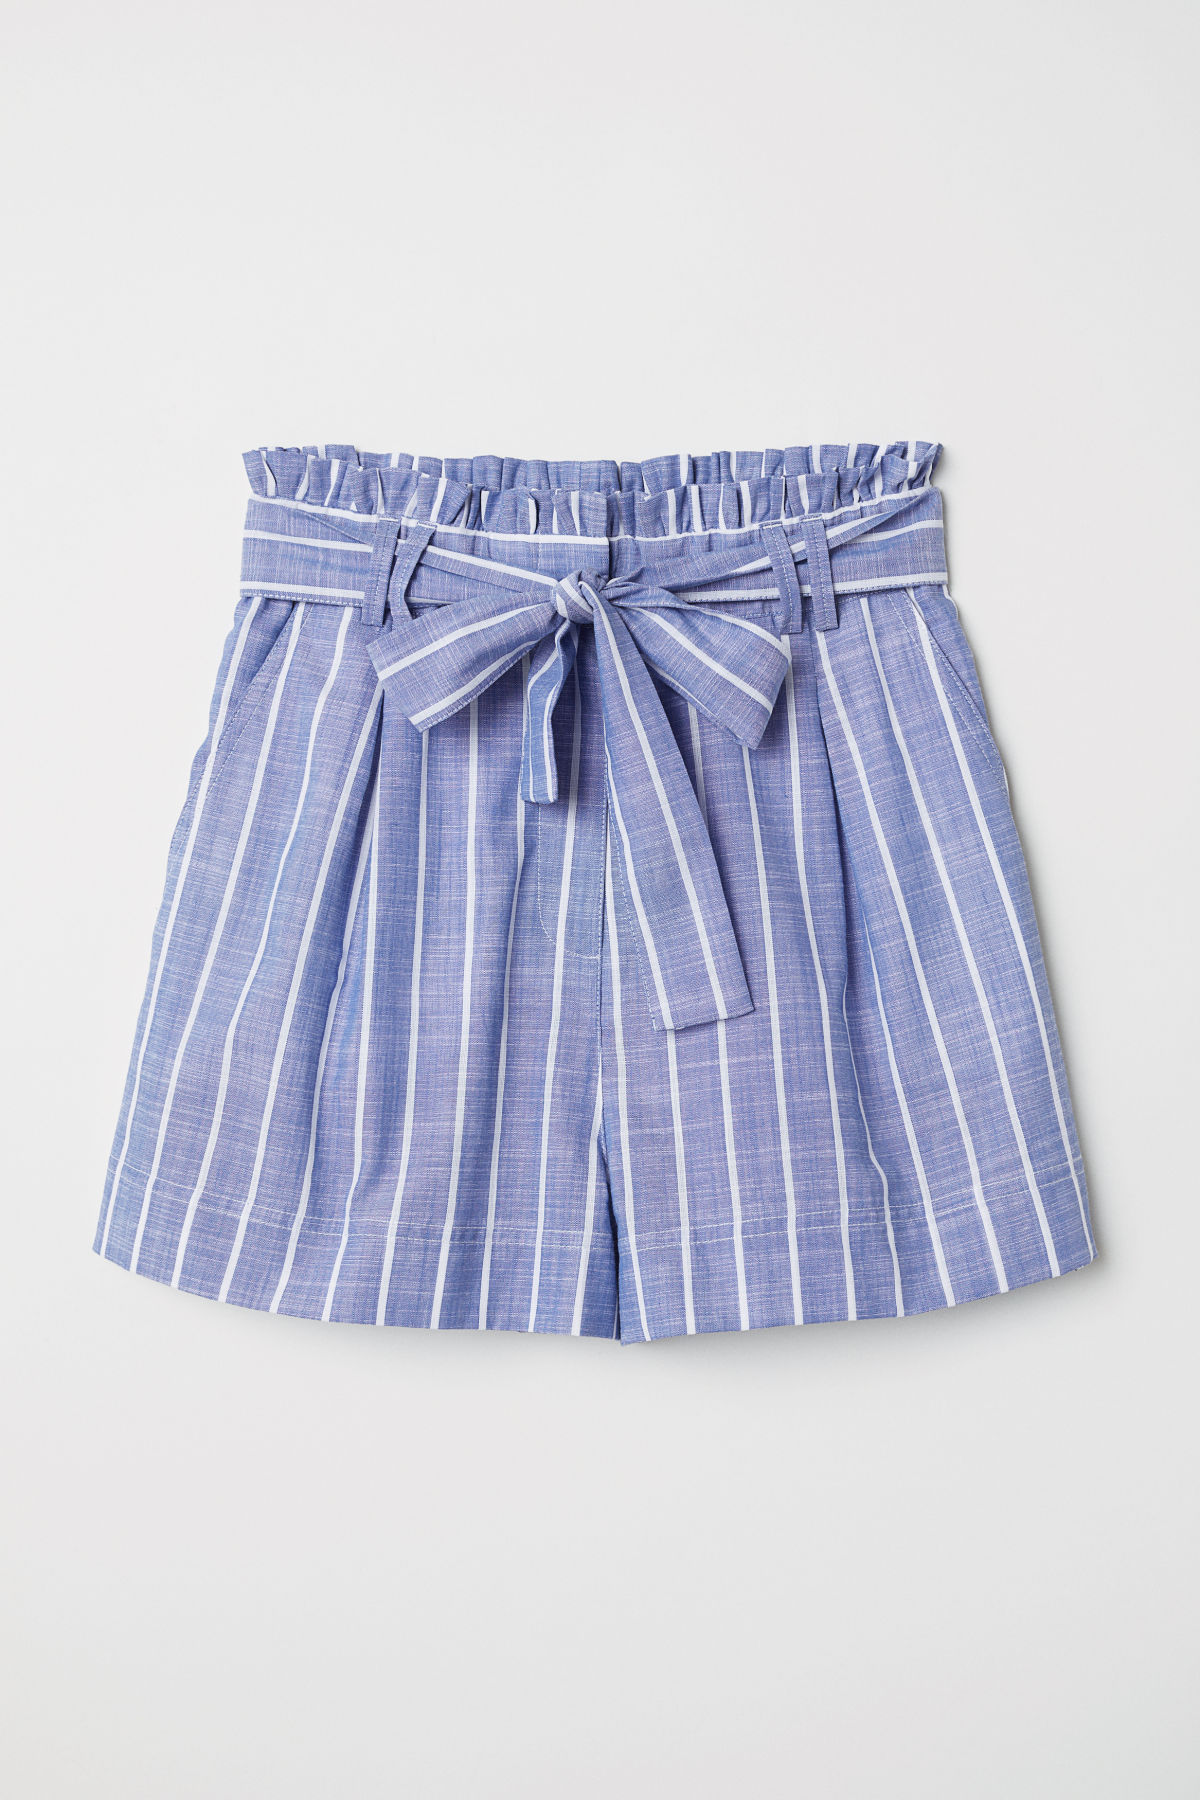 Blue Striped Shorts with Bow